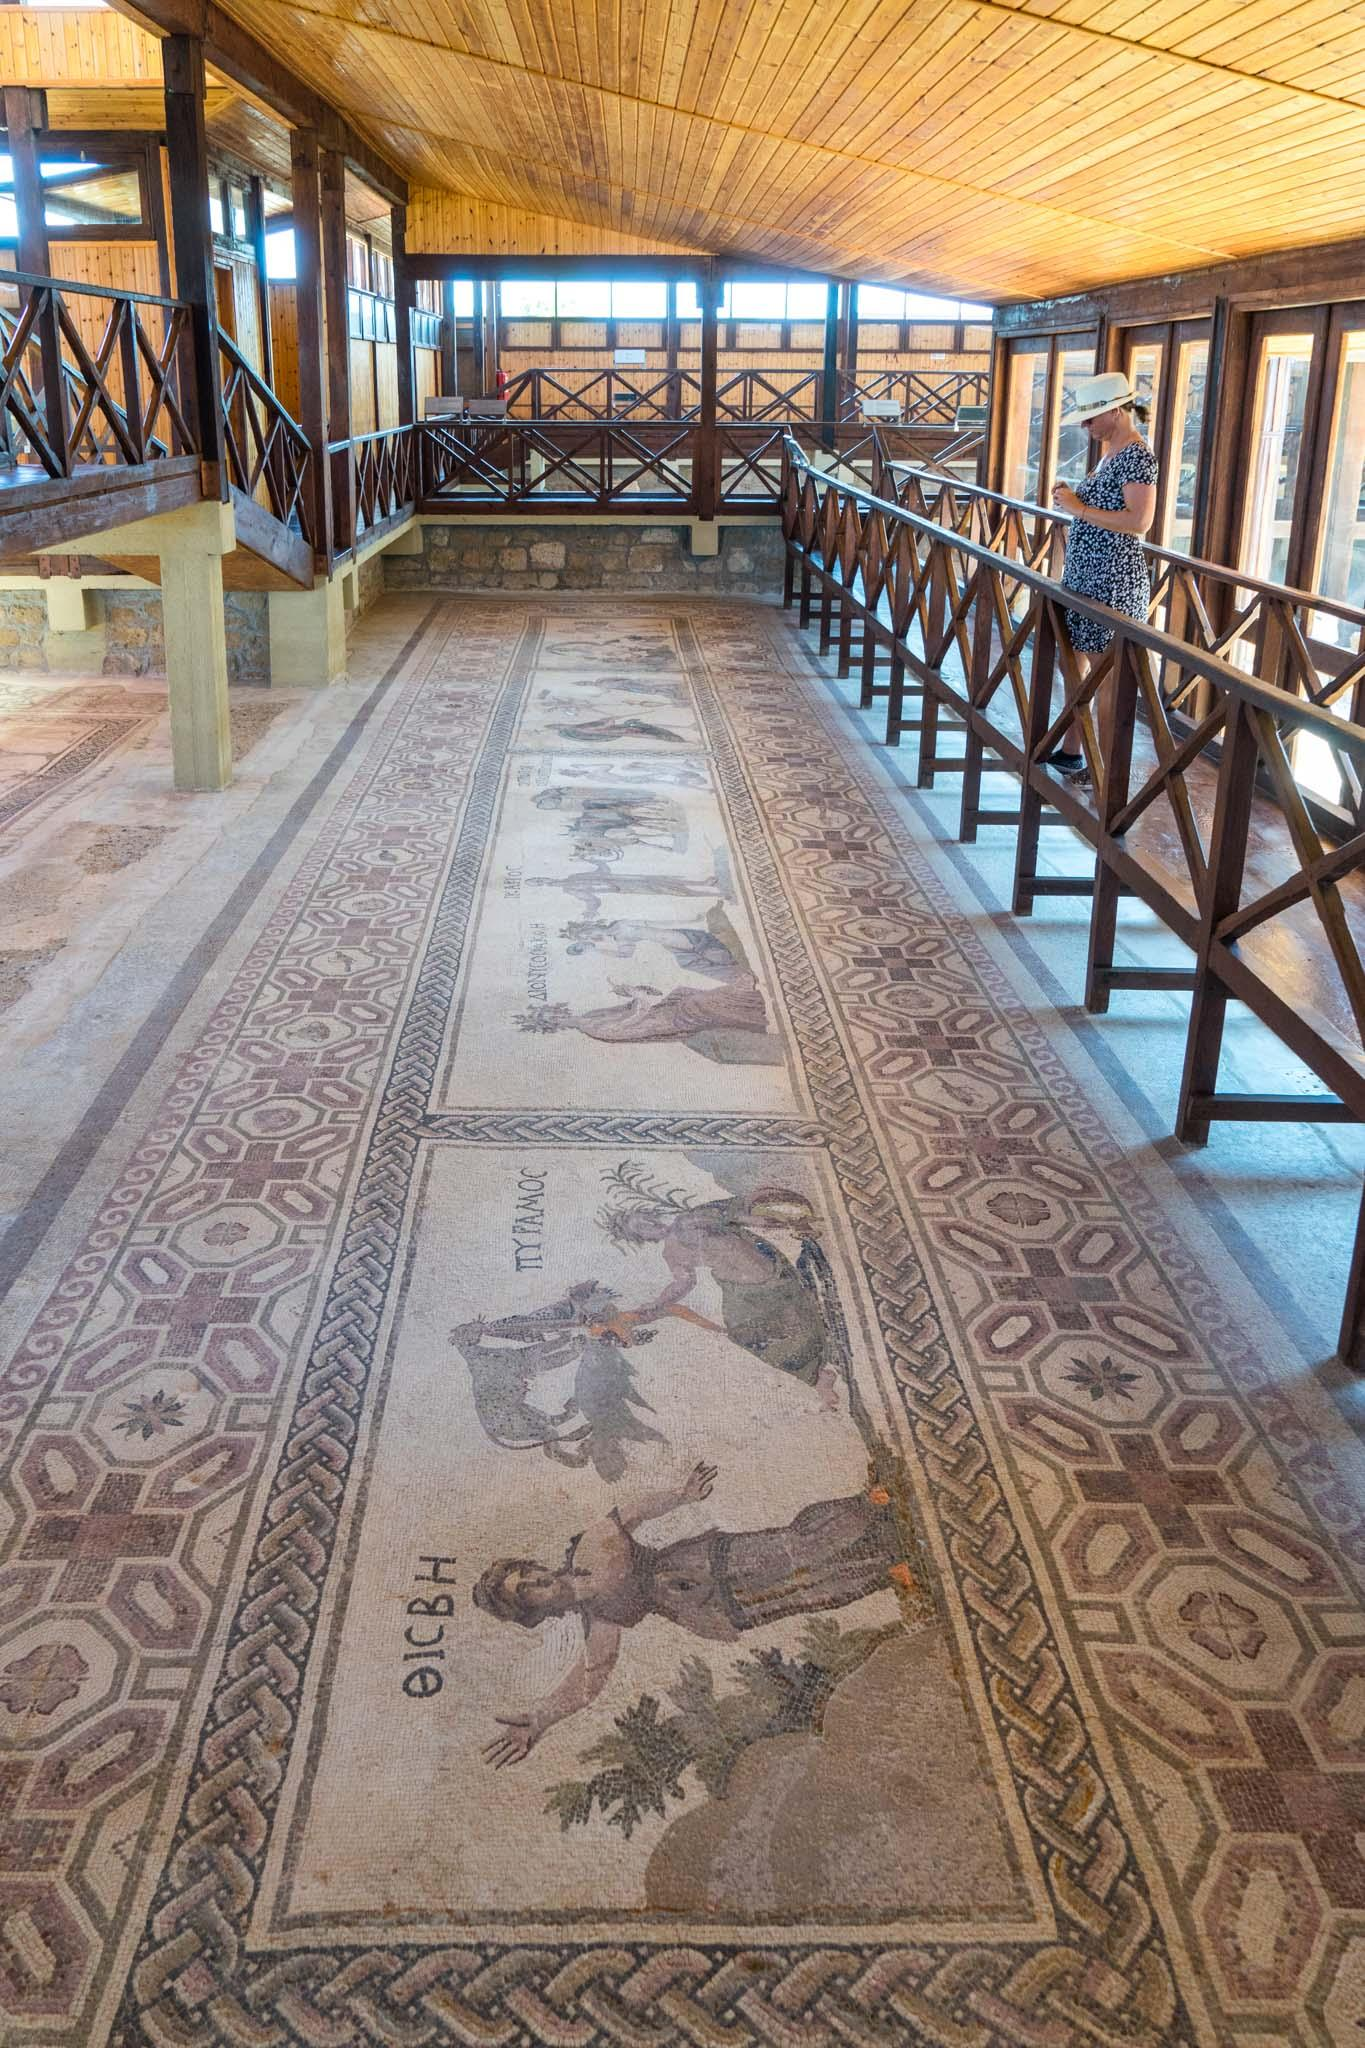 The House of Dionysos at Kato Pafos has one of the most spectacular collections of floor mosaics in the world. Elevated walkways above mosaics allow visitors to see them in all their glory. – © Michael Turtle